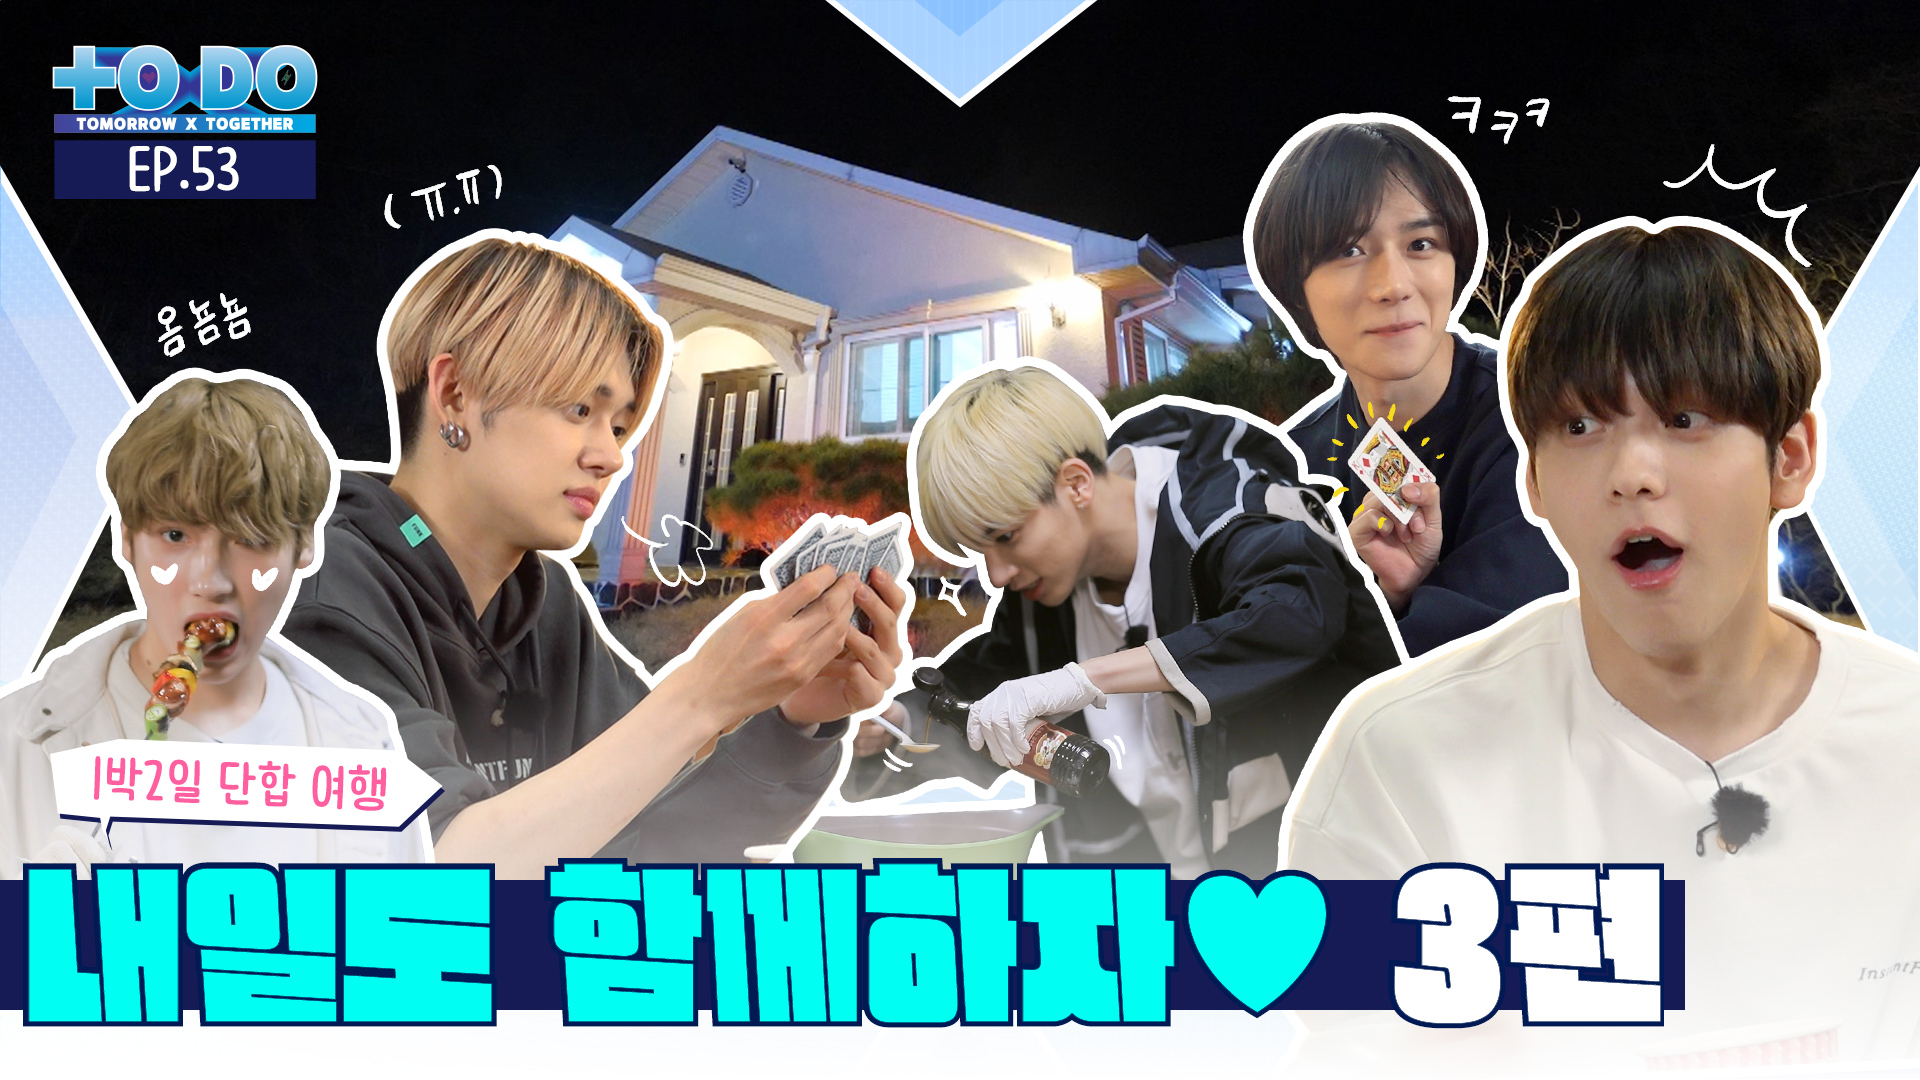 TO DO X TOMORROW X TOGETHER - EP.53